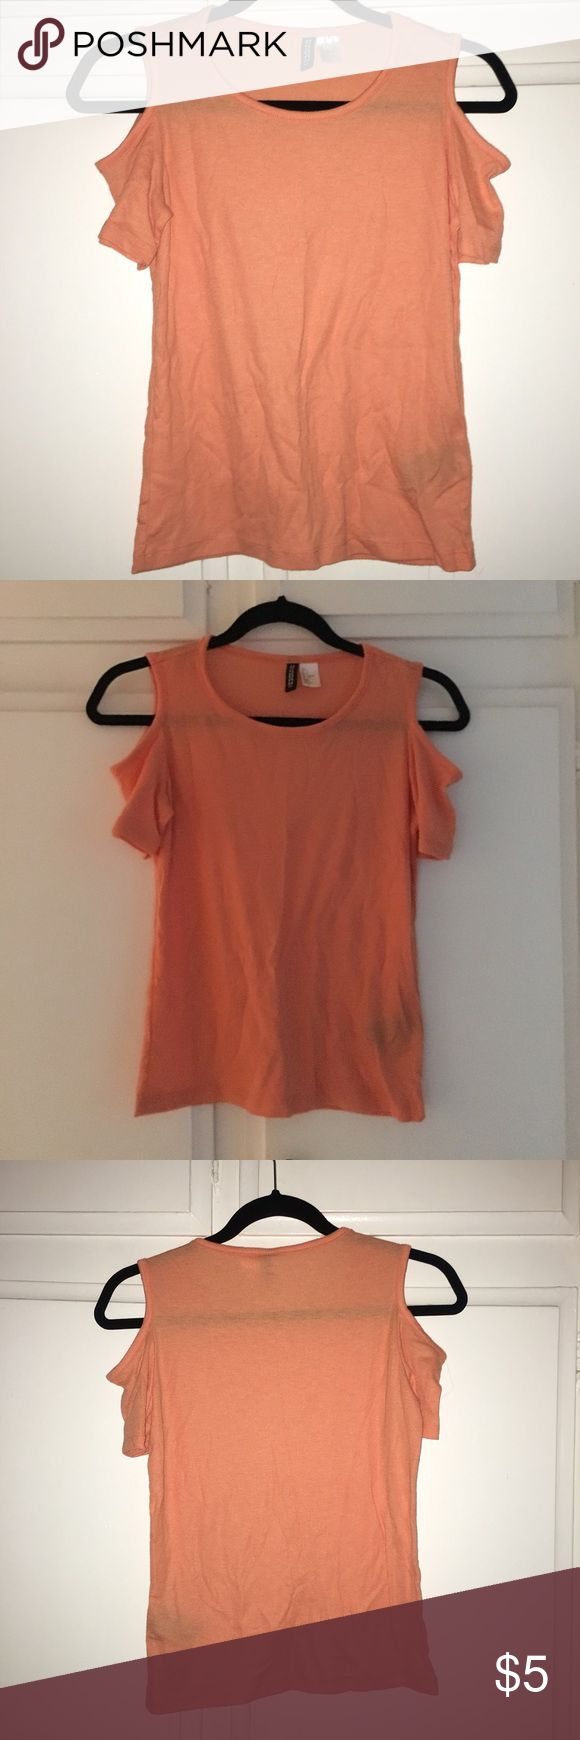 H&M Cold Shoulder Top Light orange short sleeve top with shoulder cut outs. Worn once Divided Tops Tees - Short Sleeve